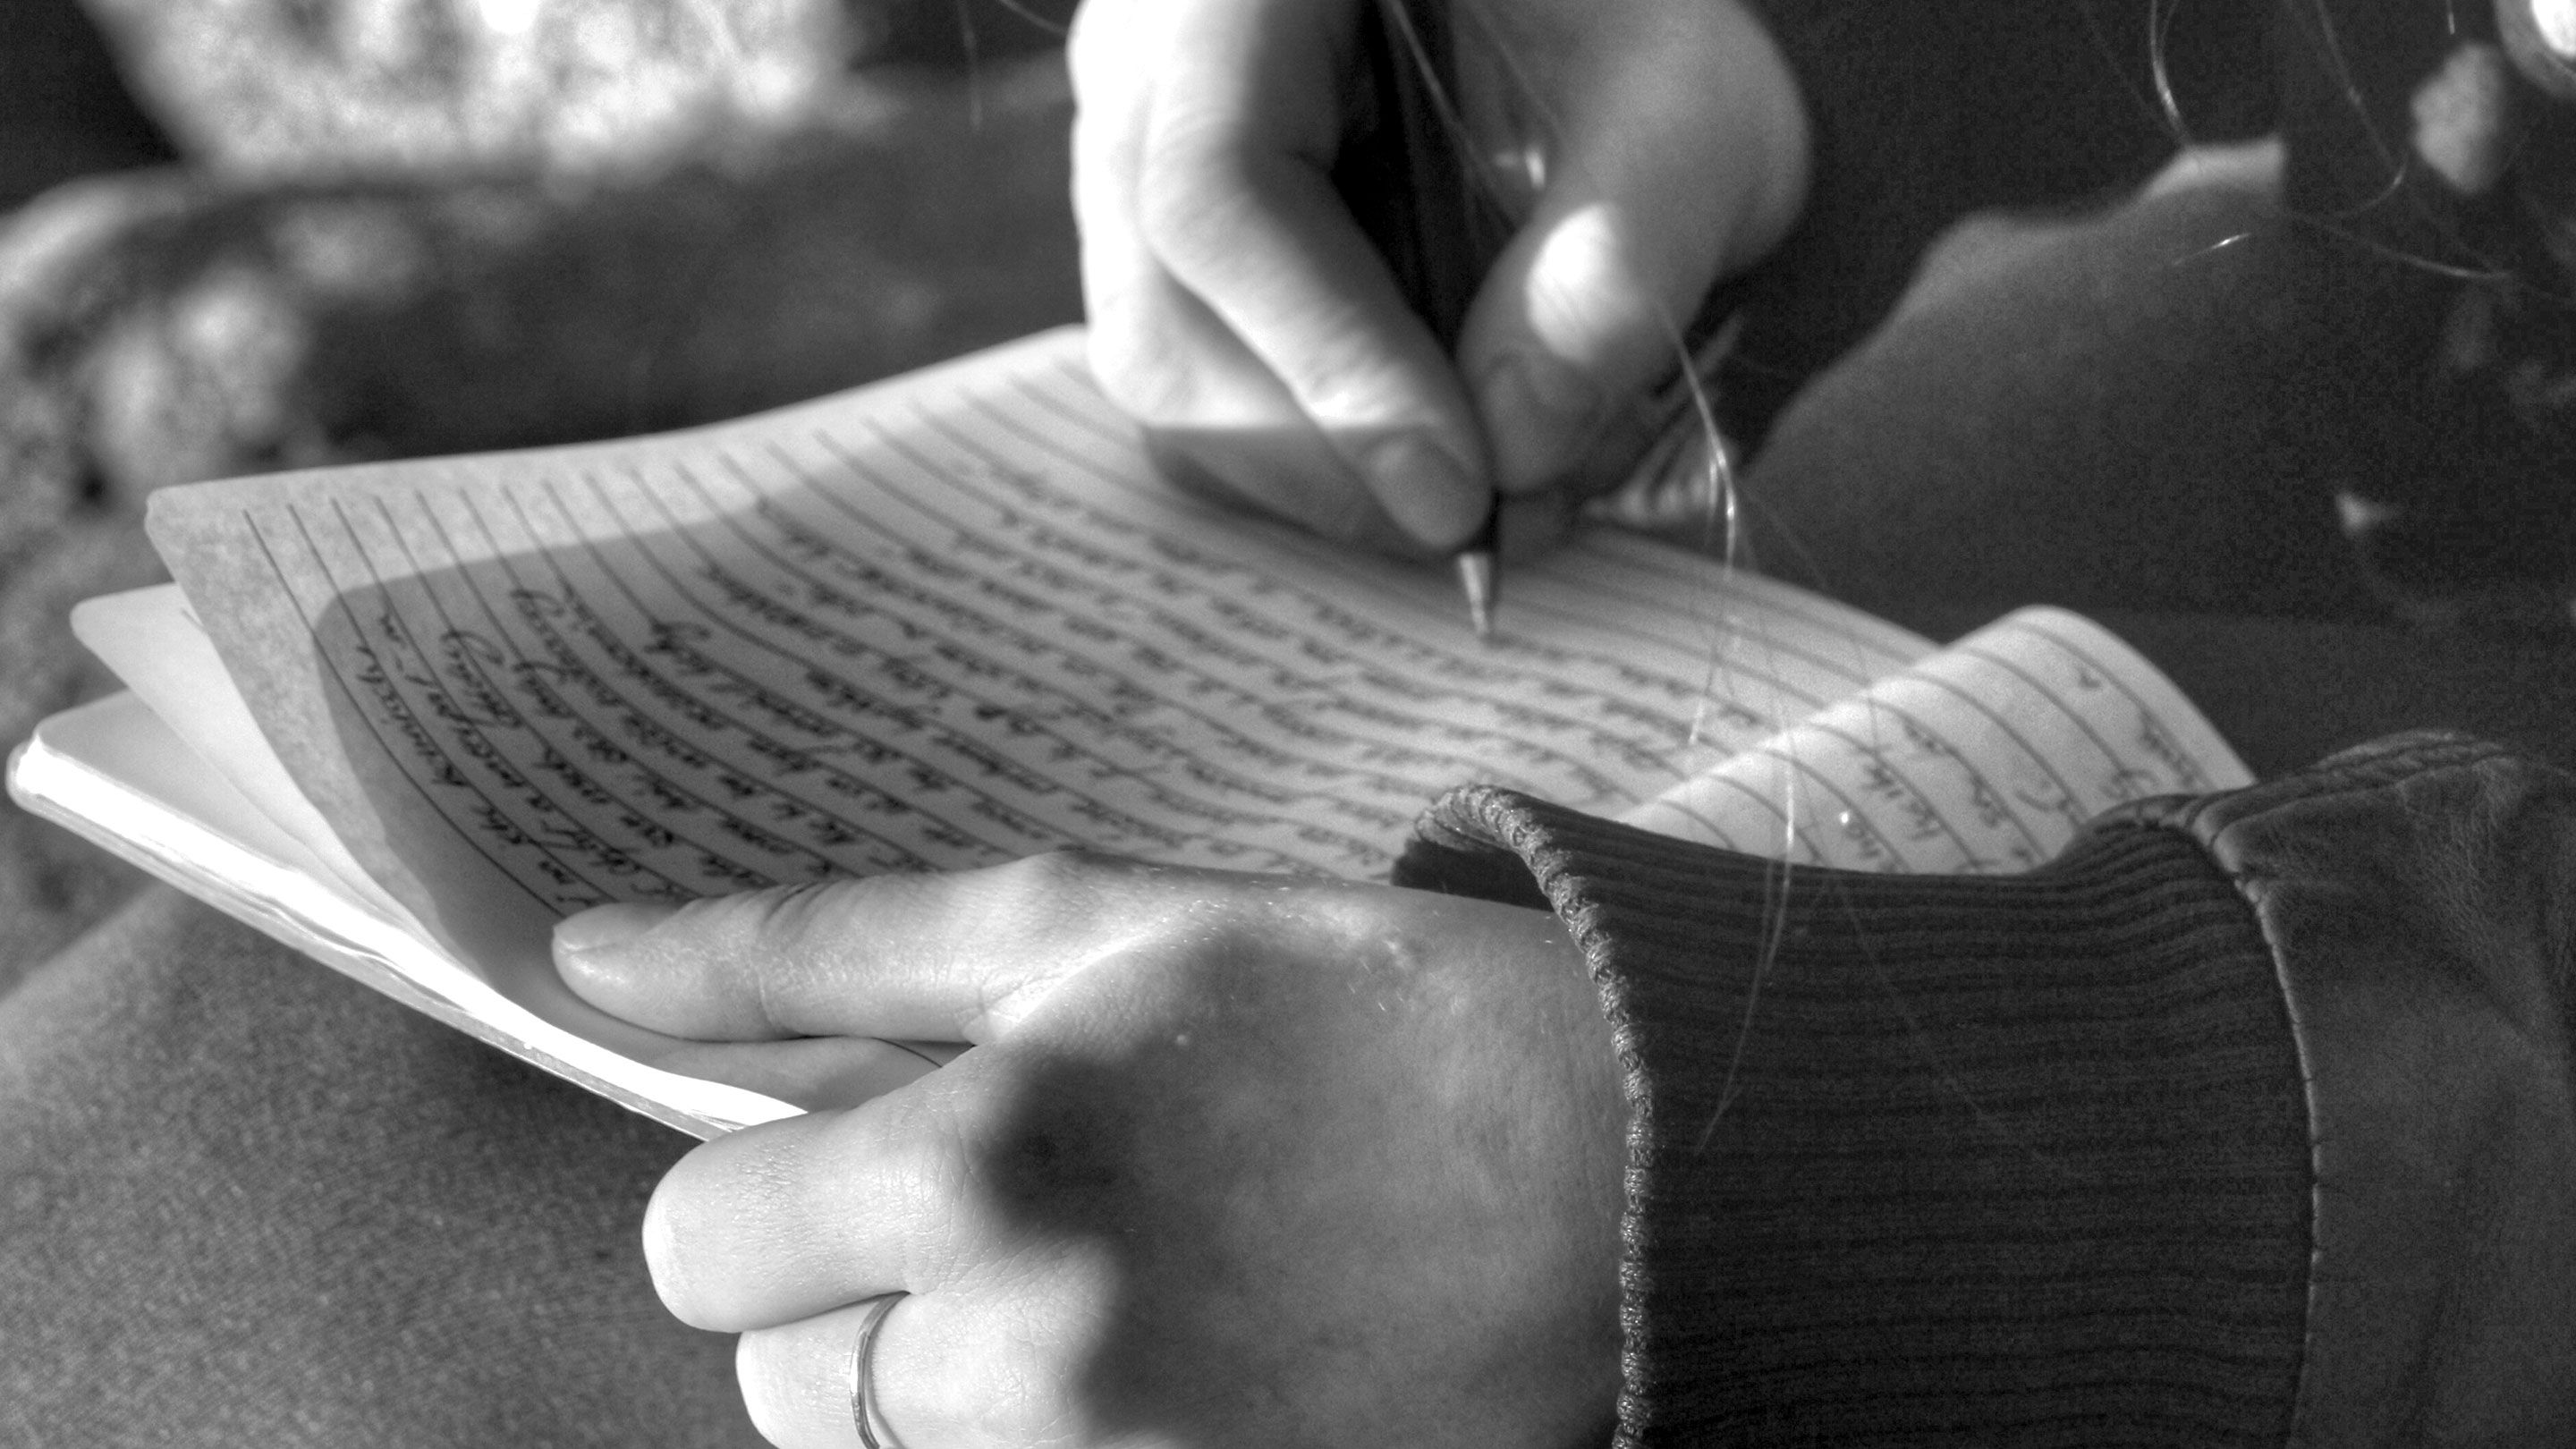 Close-up black-and-white photo of a student's hands as they write in a journal.